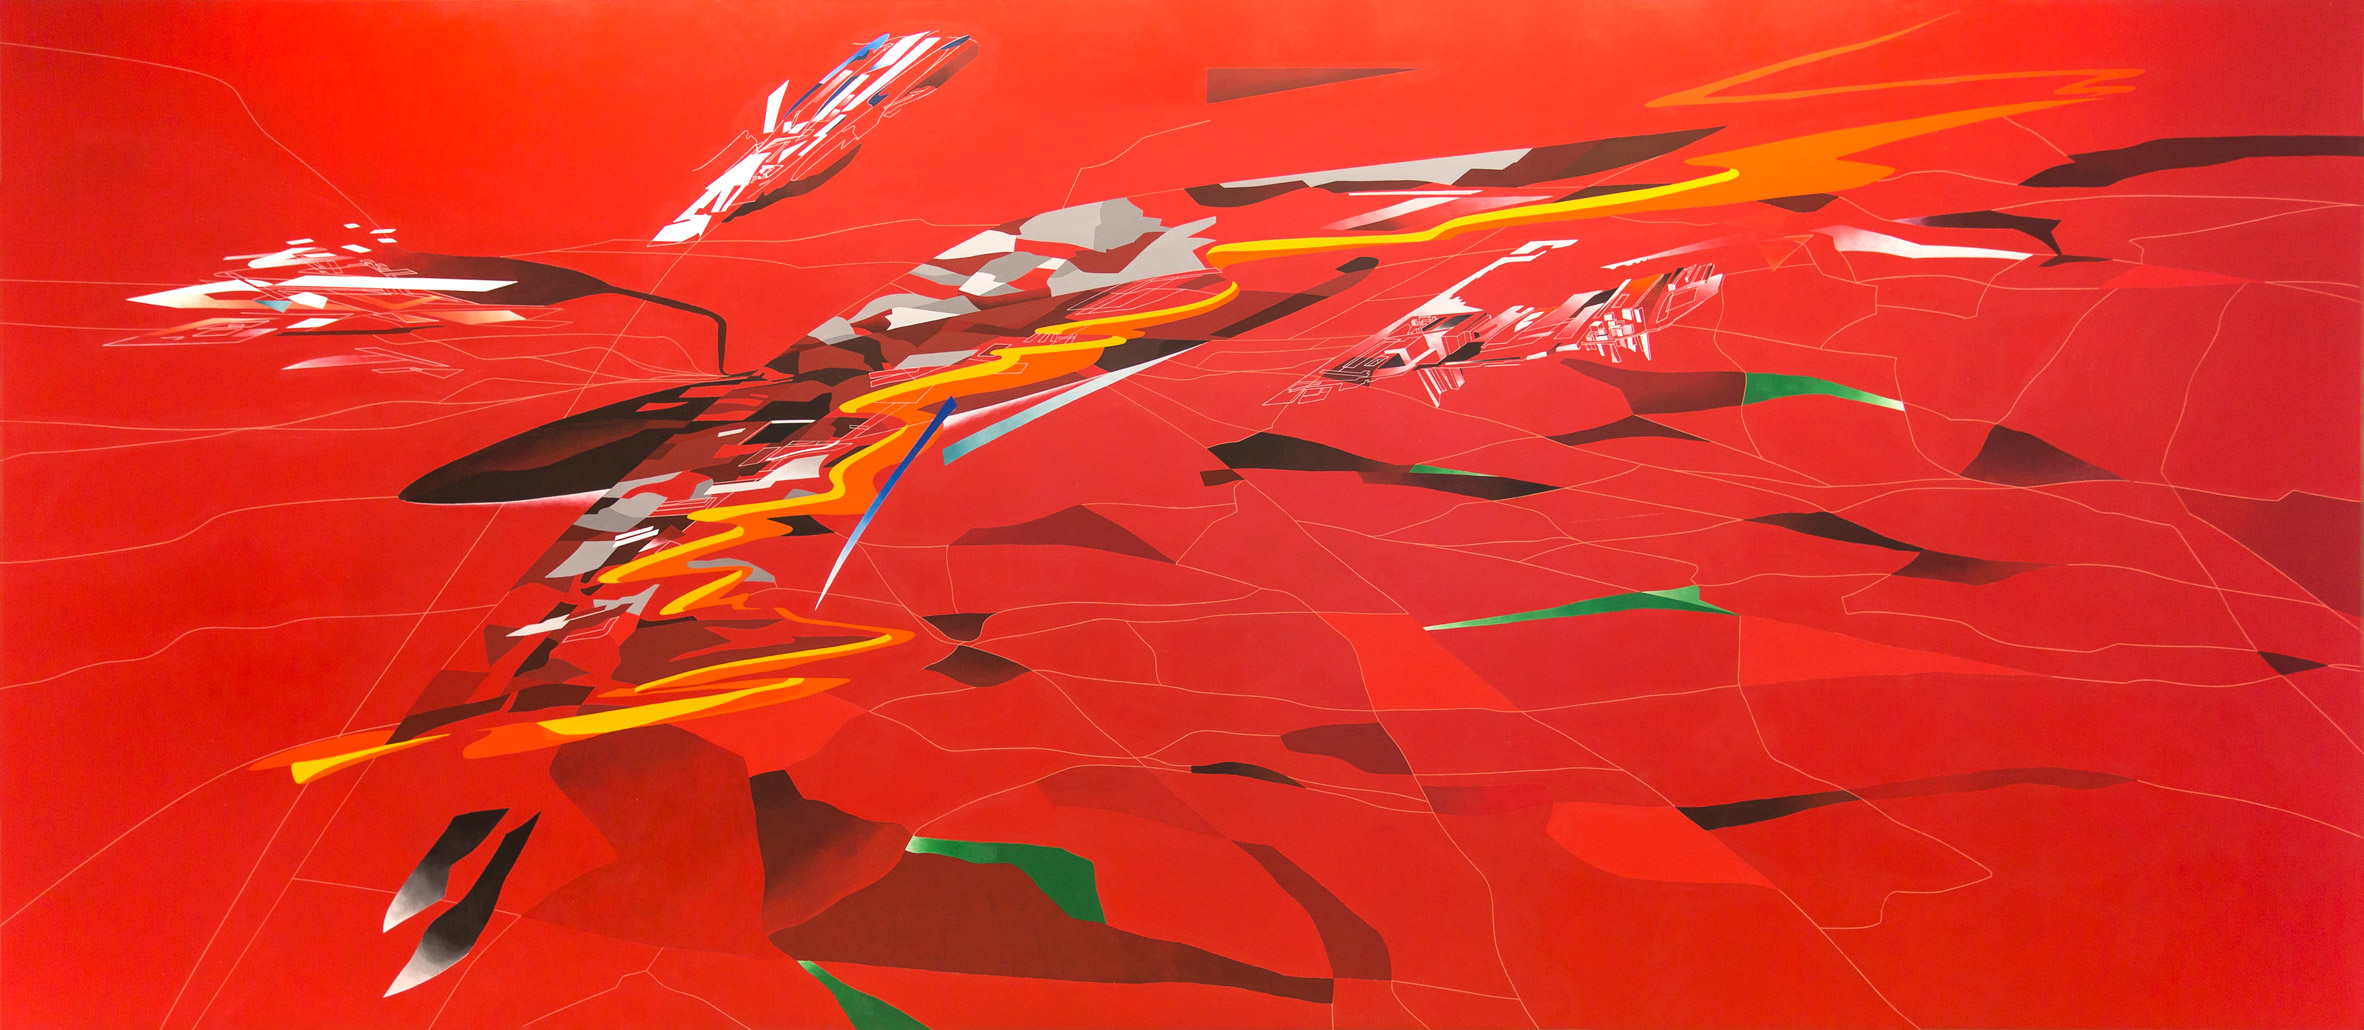 3 Zaha Hadid's early paintings to go on show at Serpentine Sackler Gallery Serpentine Sackler Gallery Zaha Hadid's early paintings at Serpentine Sackler Gallery 3